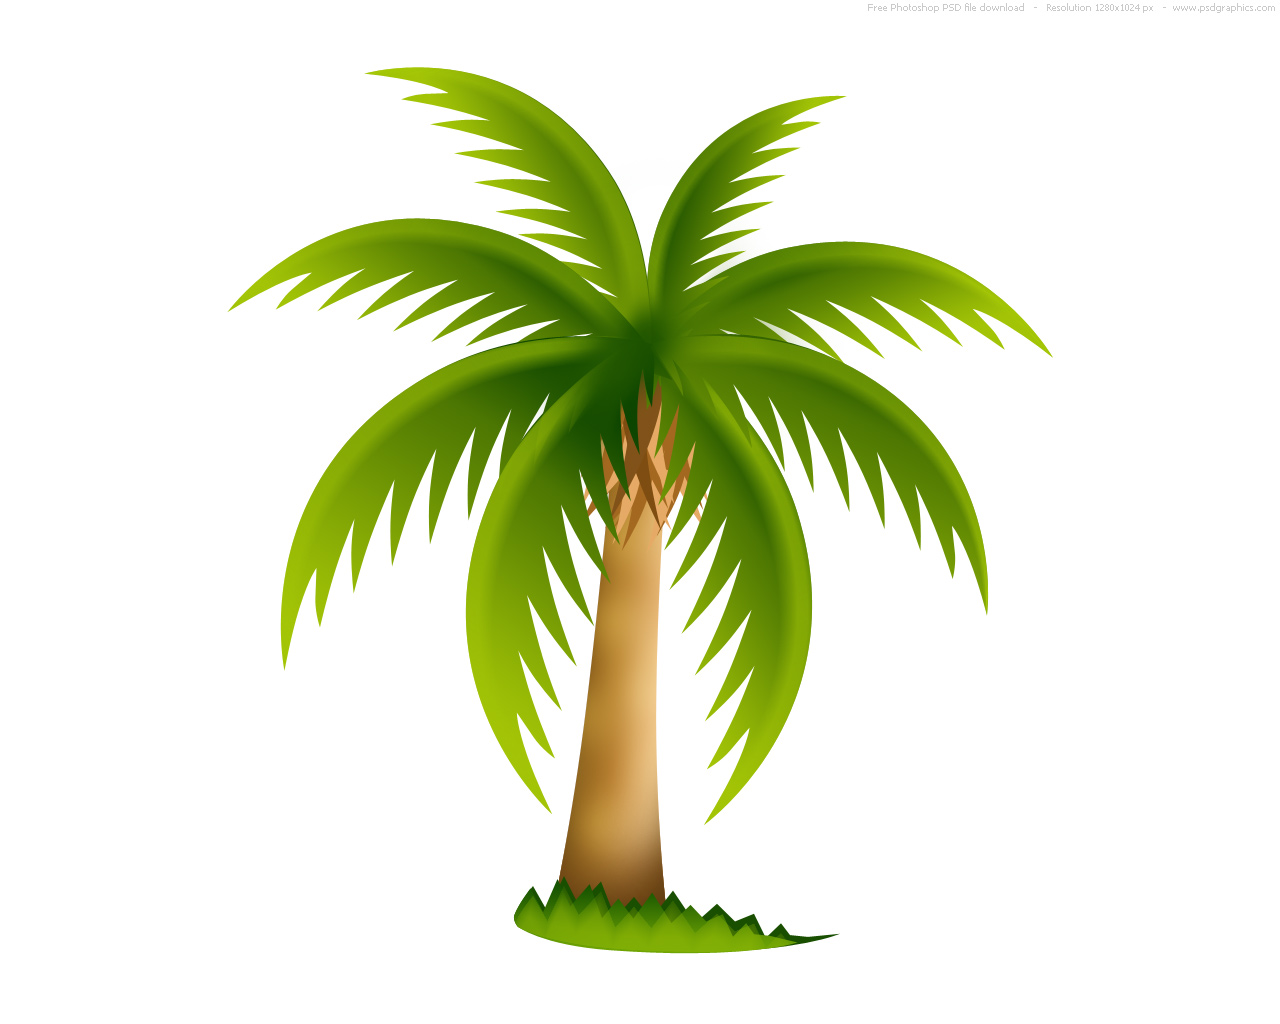 Tree Clipart | Palm Tree imag - Palm Tree Images Clip Art